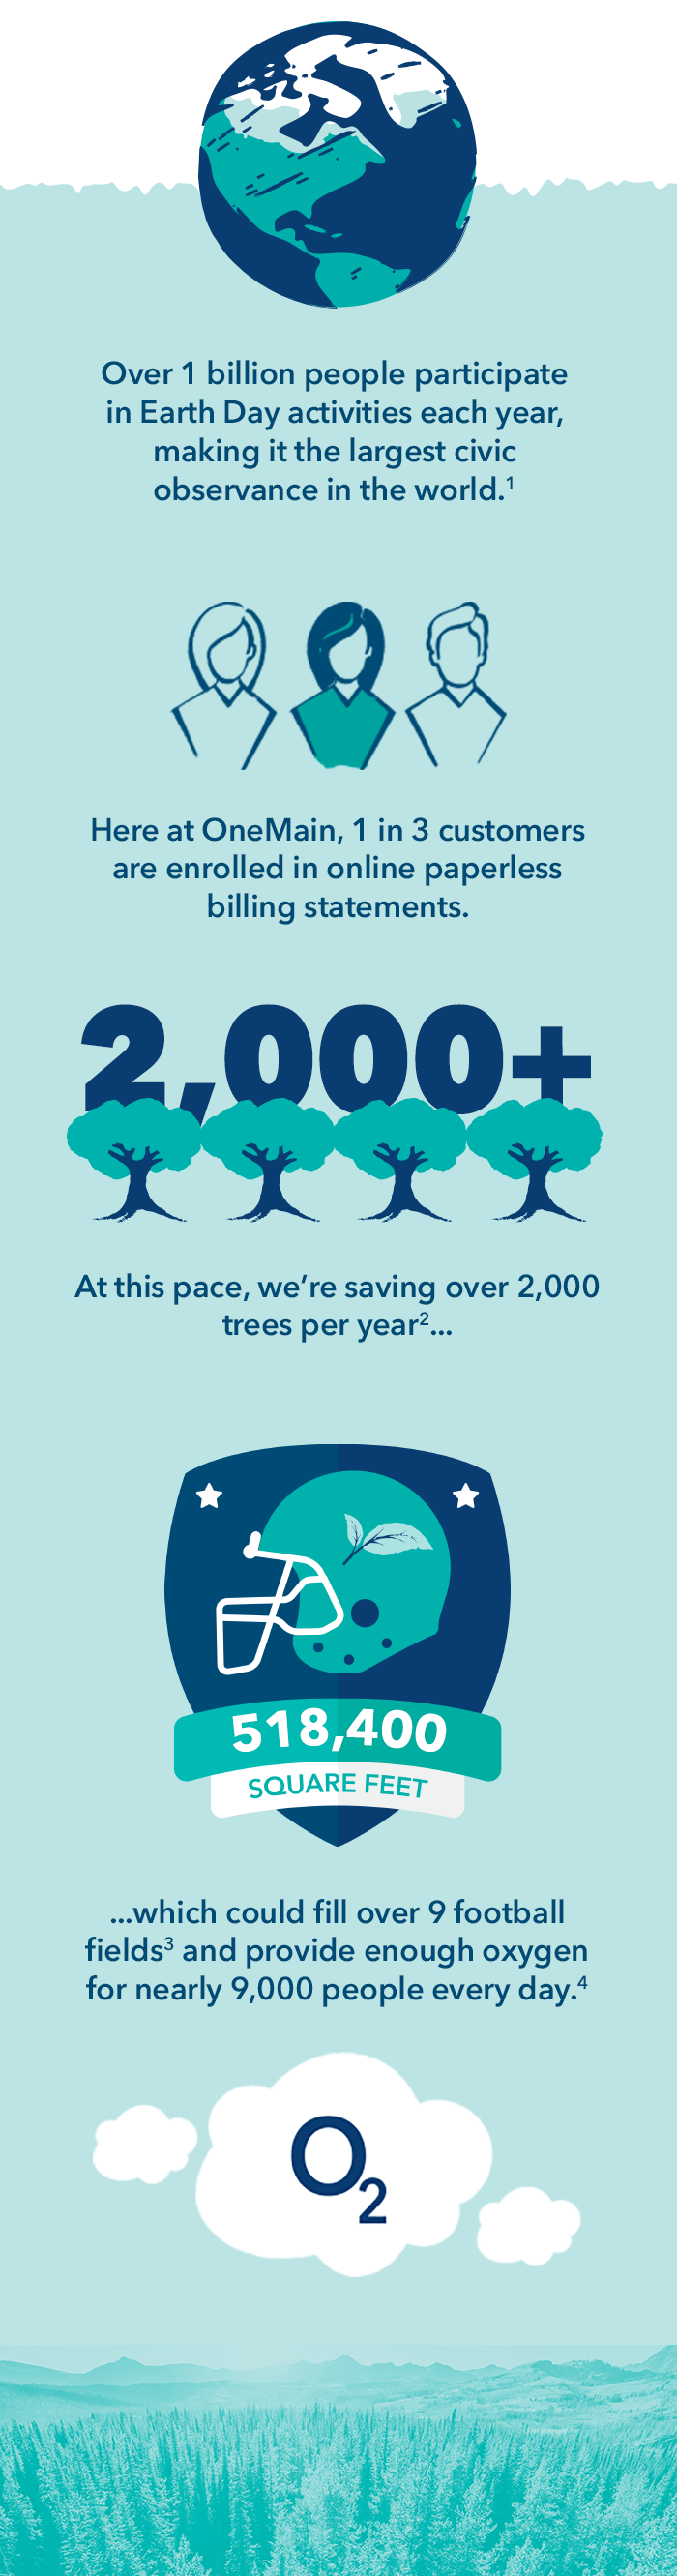 Infographic by OneMain Financial about 2019 Earth Day and its Paperless Pledge campaign.